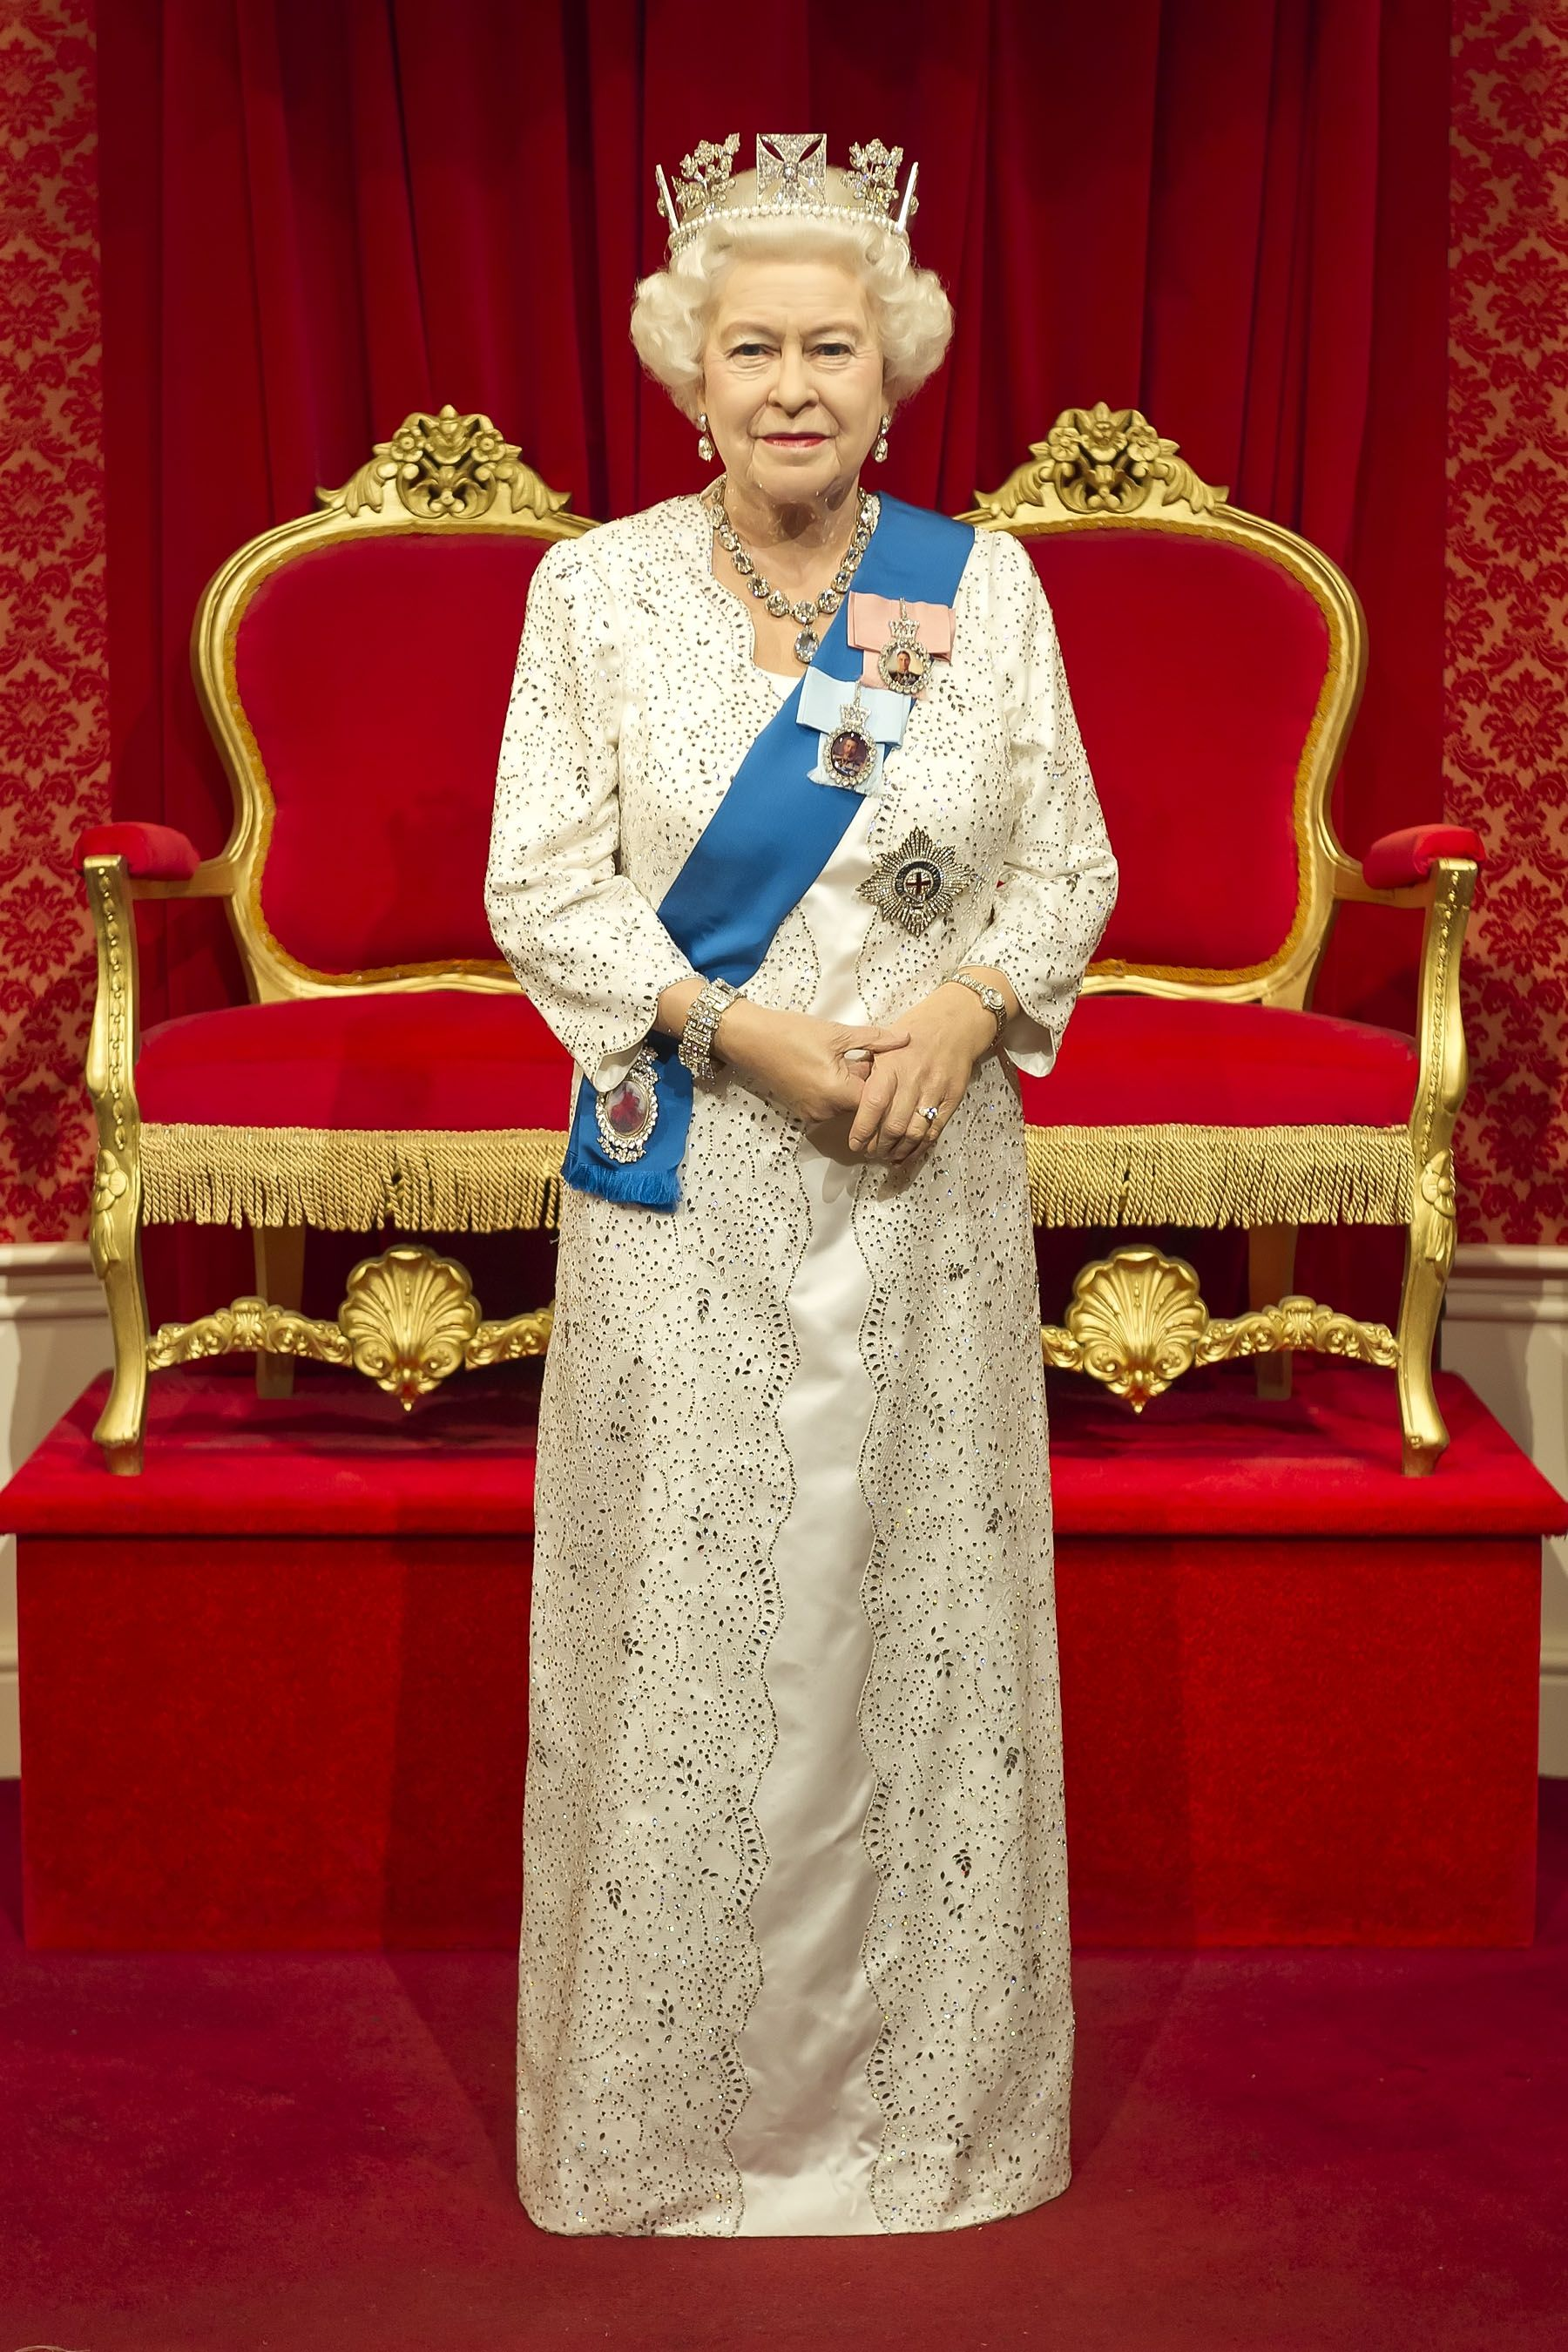 The Queen S Brand New Wax Figure At Madame Tussauds London Madame Tussauds Tussauds London Tussauds